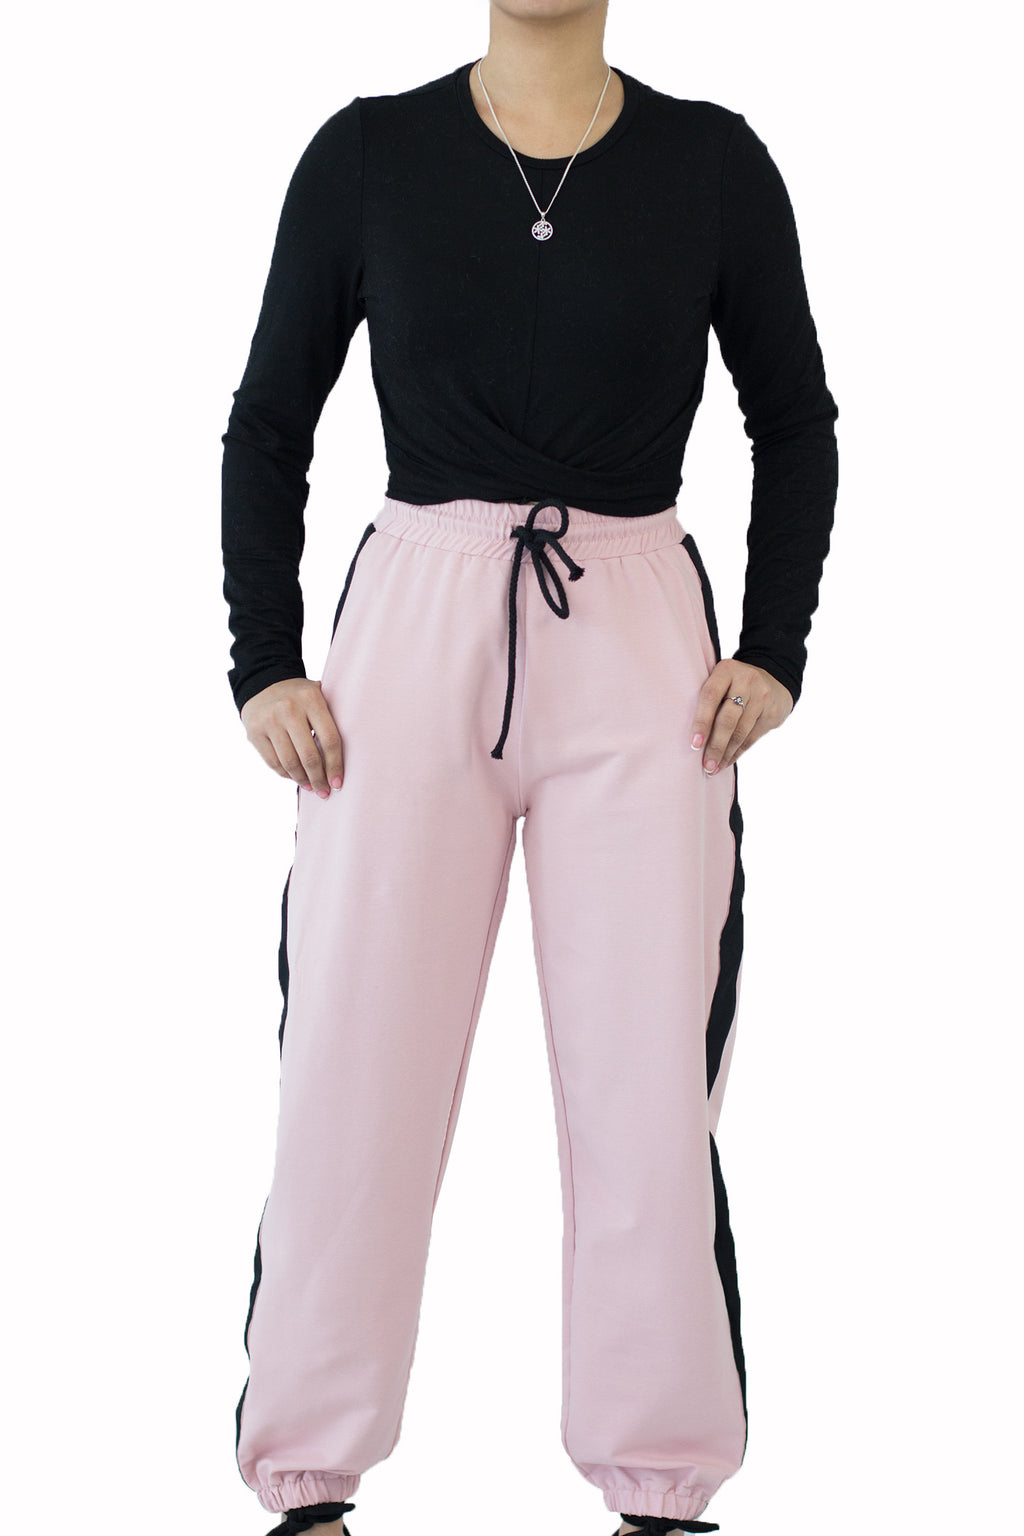 Fried Chicken - Pink jogging pants in black strap